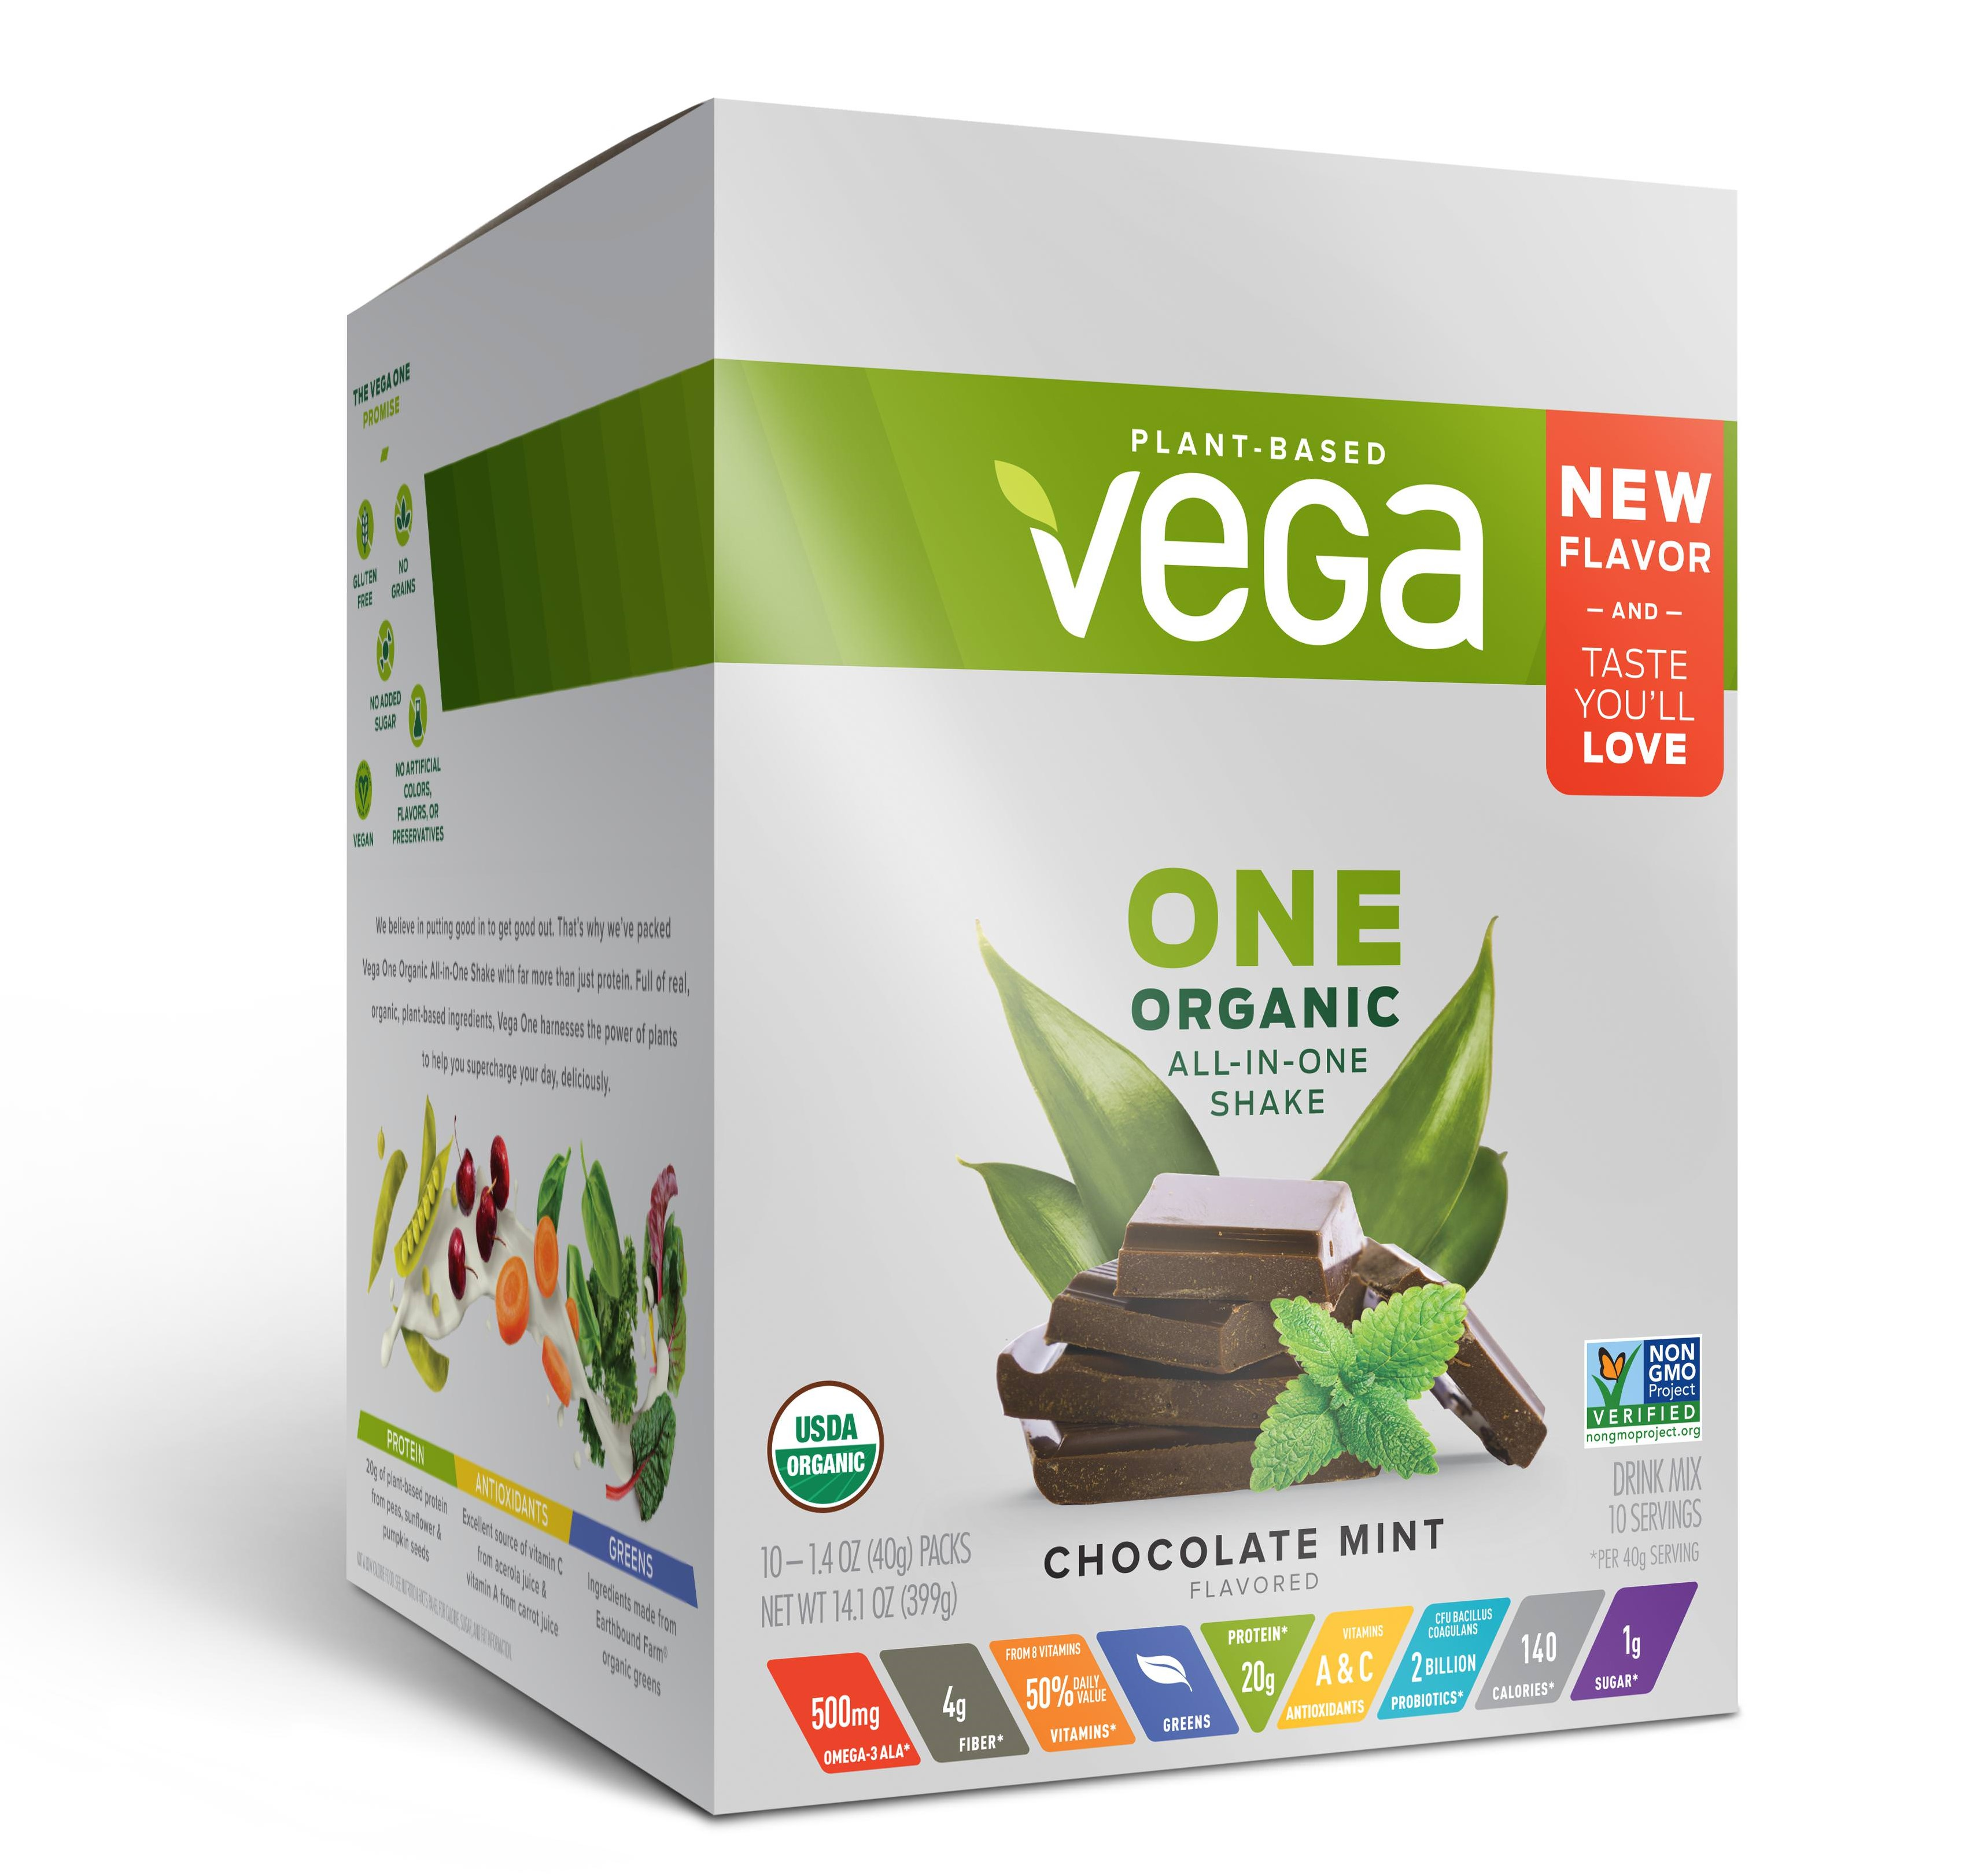 Vega One Organic Vegan Protein Powder, Chocolate Mint, 20g Protein, 1.4 Oz, 10 Ct